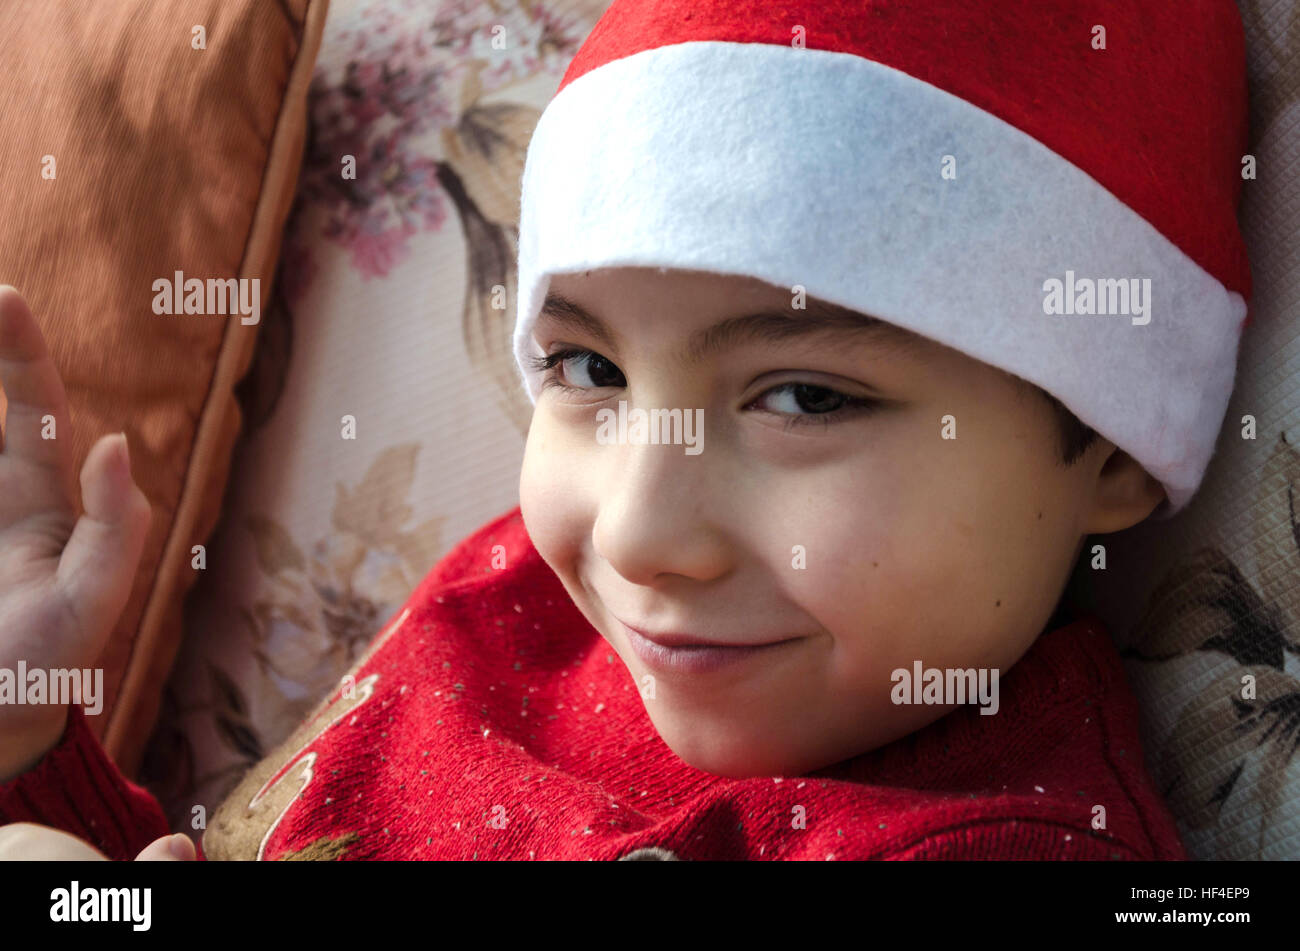 a-portrait-of-a-young-boy-wearing-a-father-christmas-hat-HF4EP9.jpg